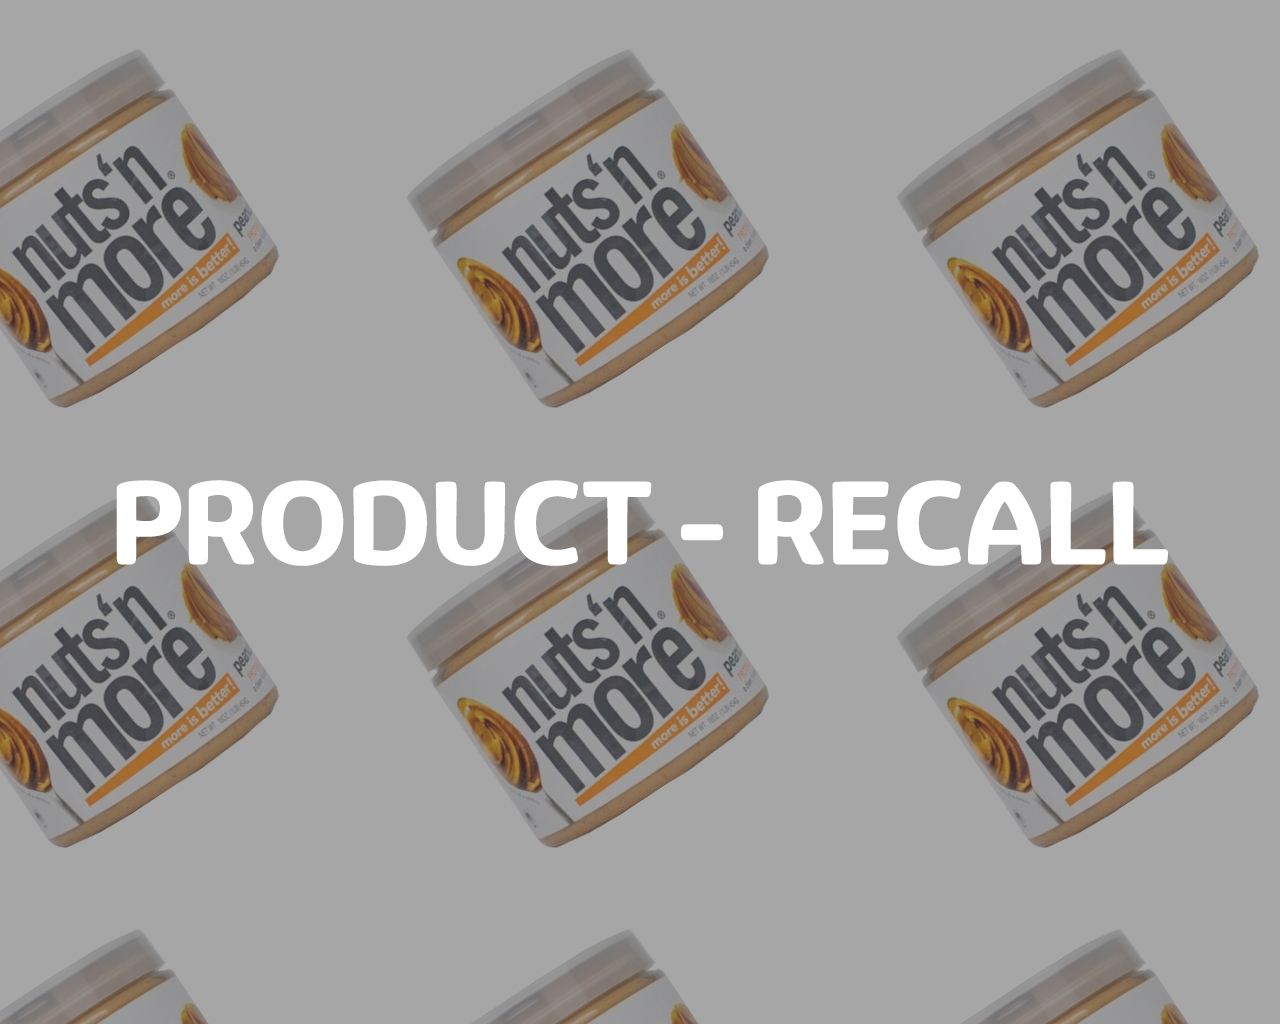 Nuts'n-More-Peanut-Butter-Spread-Recall